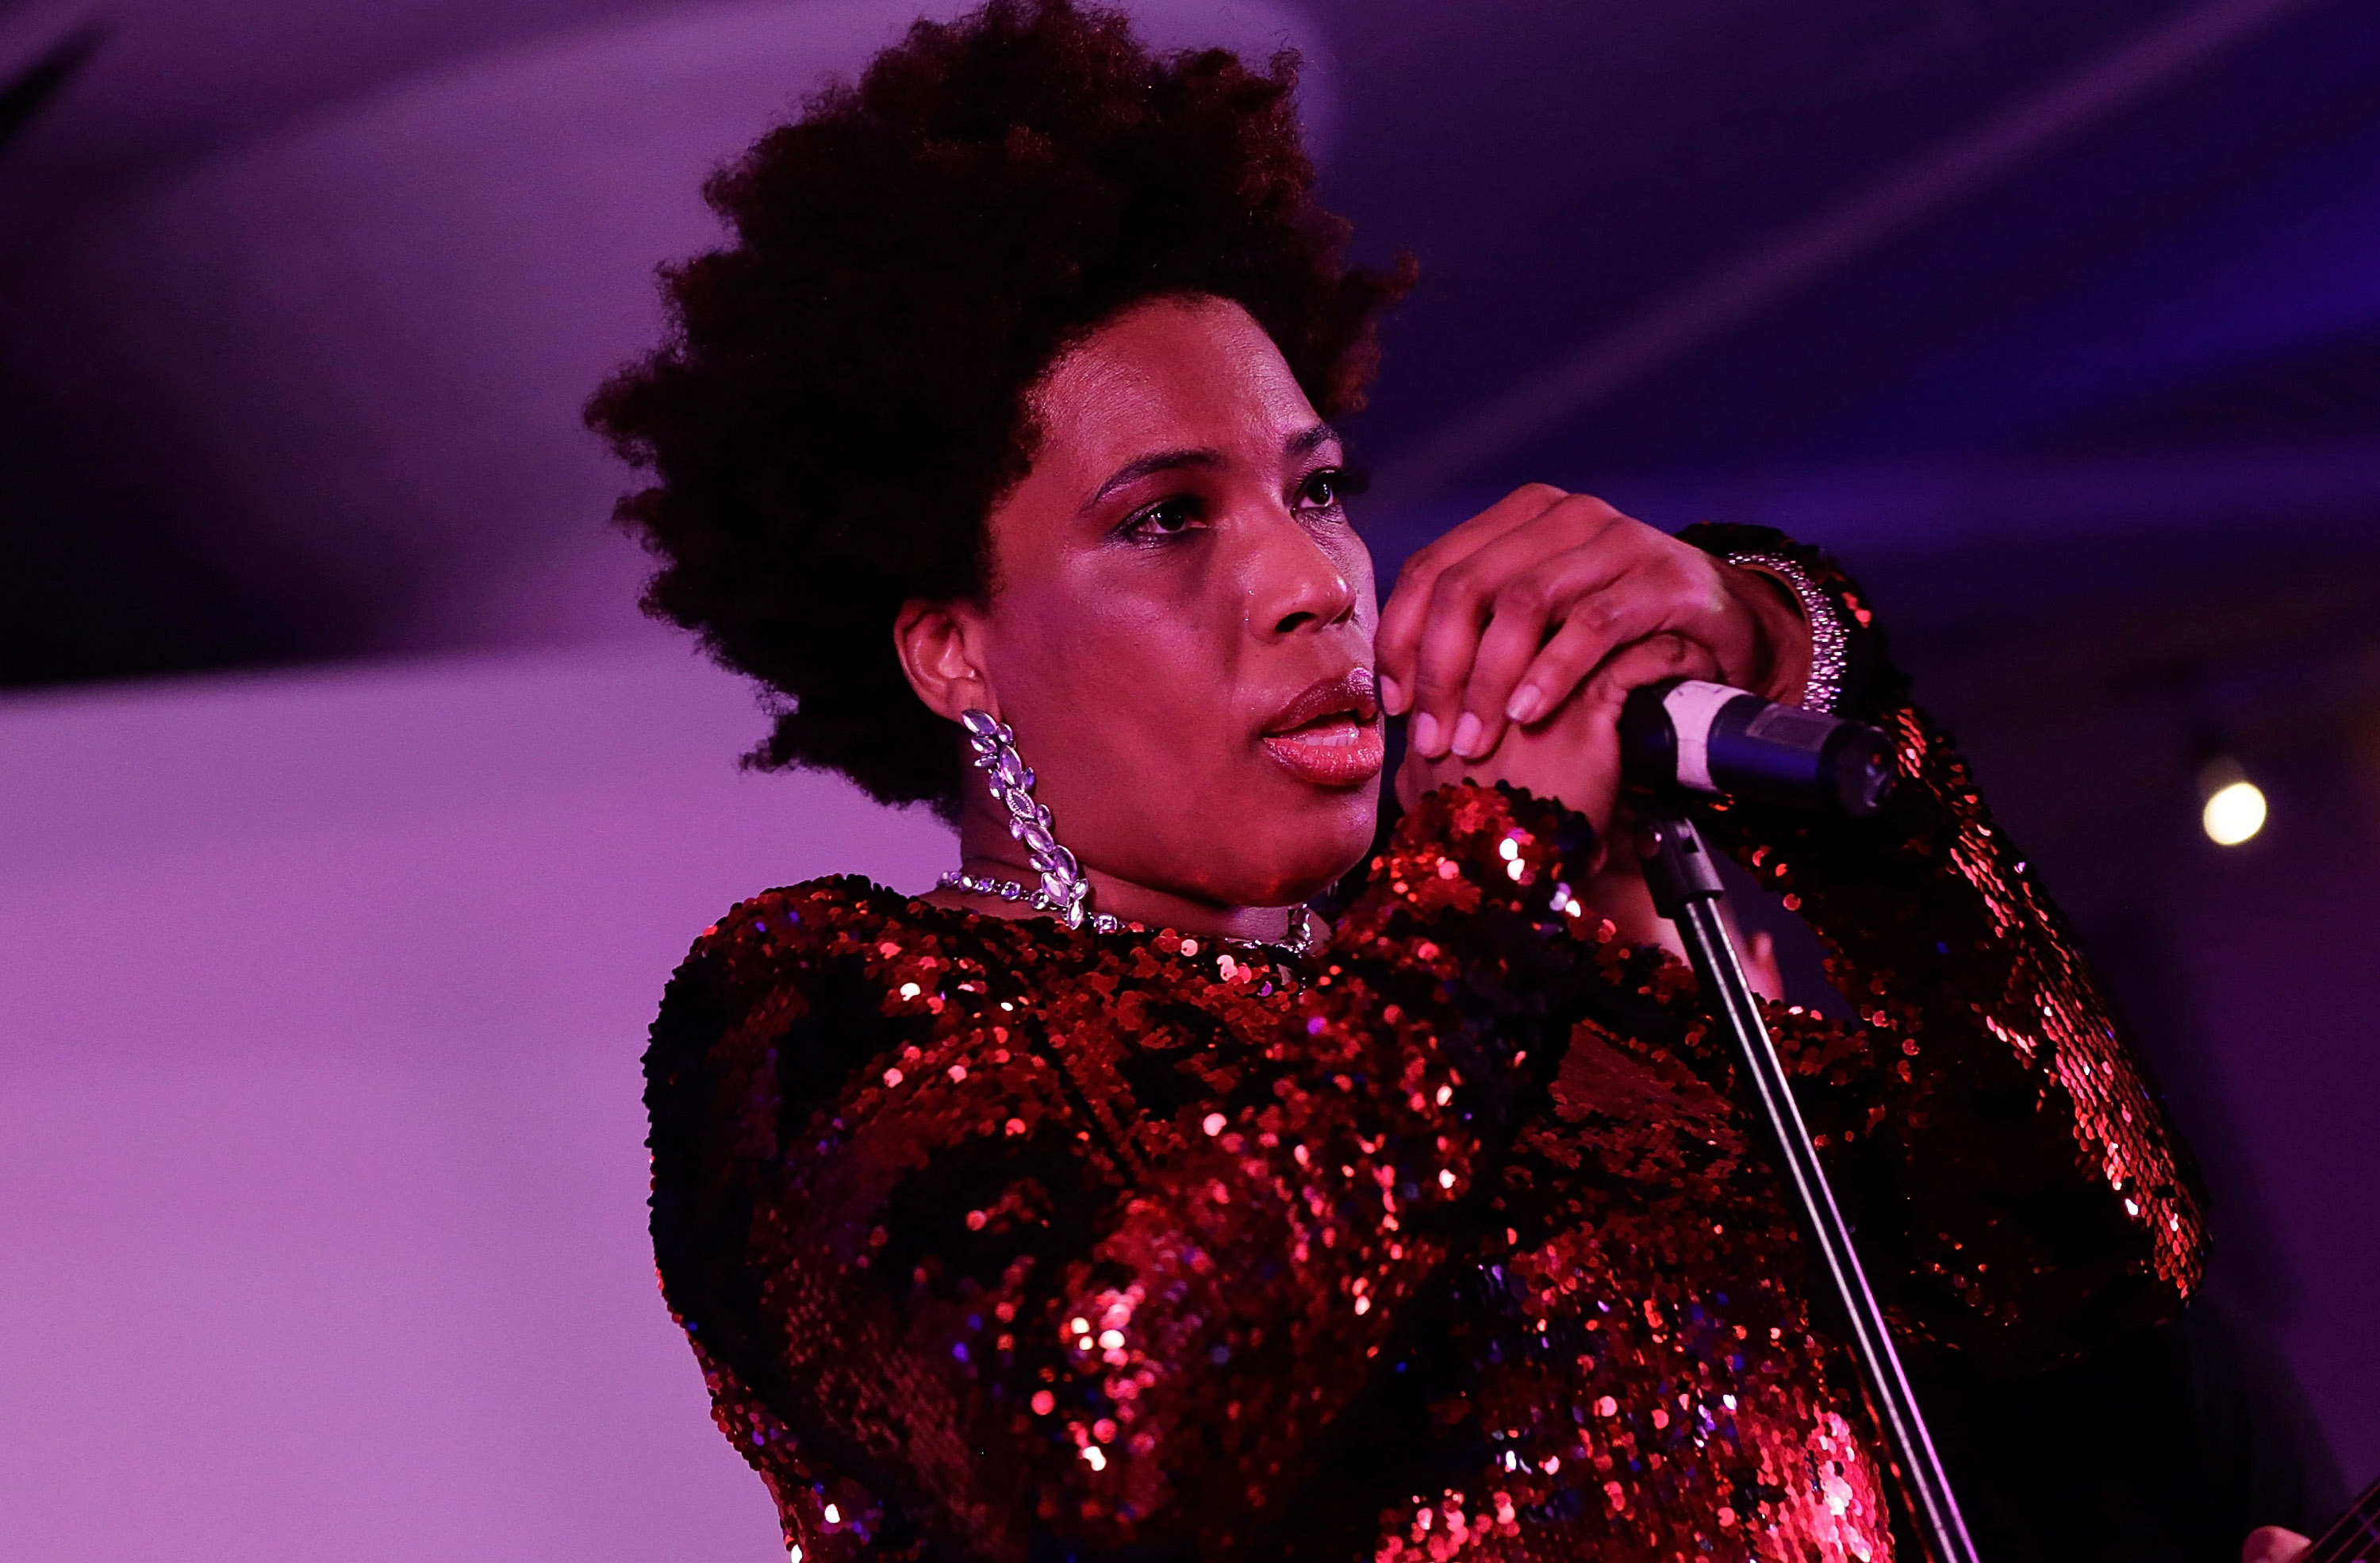 Macy Gray performs at the 24th Annual Jazz Loft Party at Hudson Studios on May 16, 2015 in New York City.